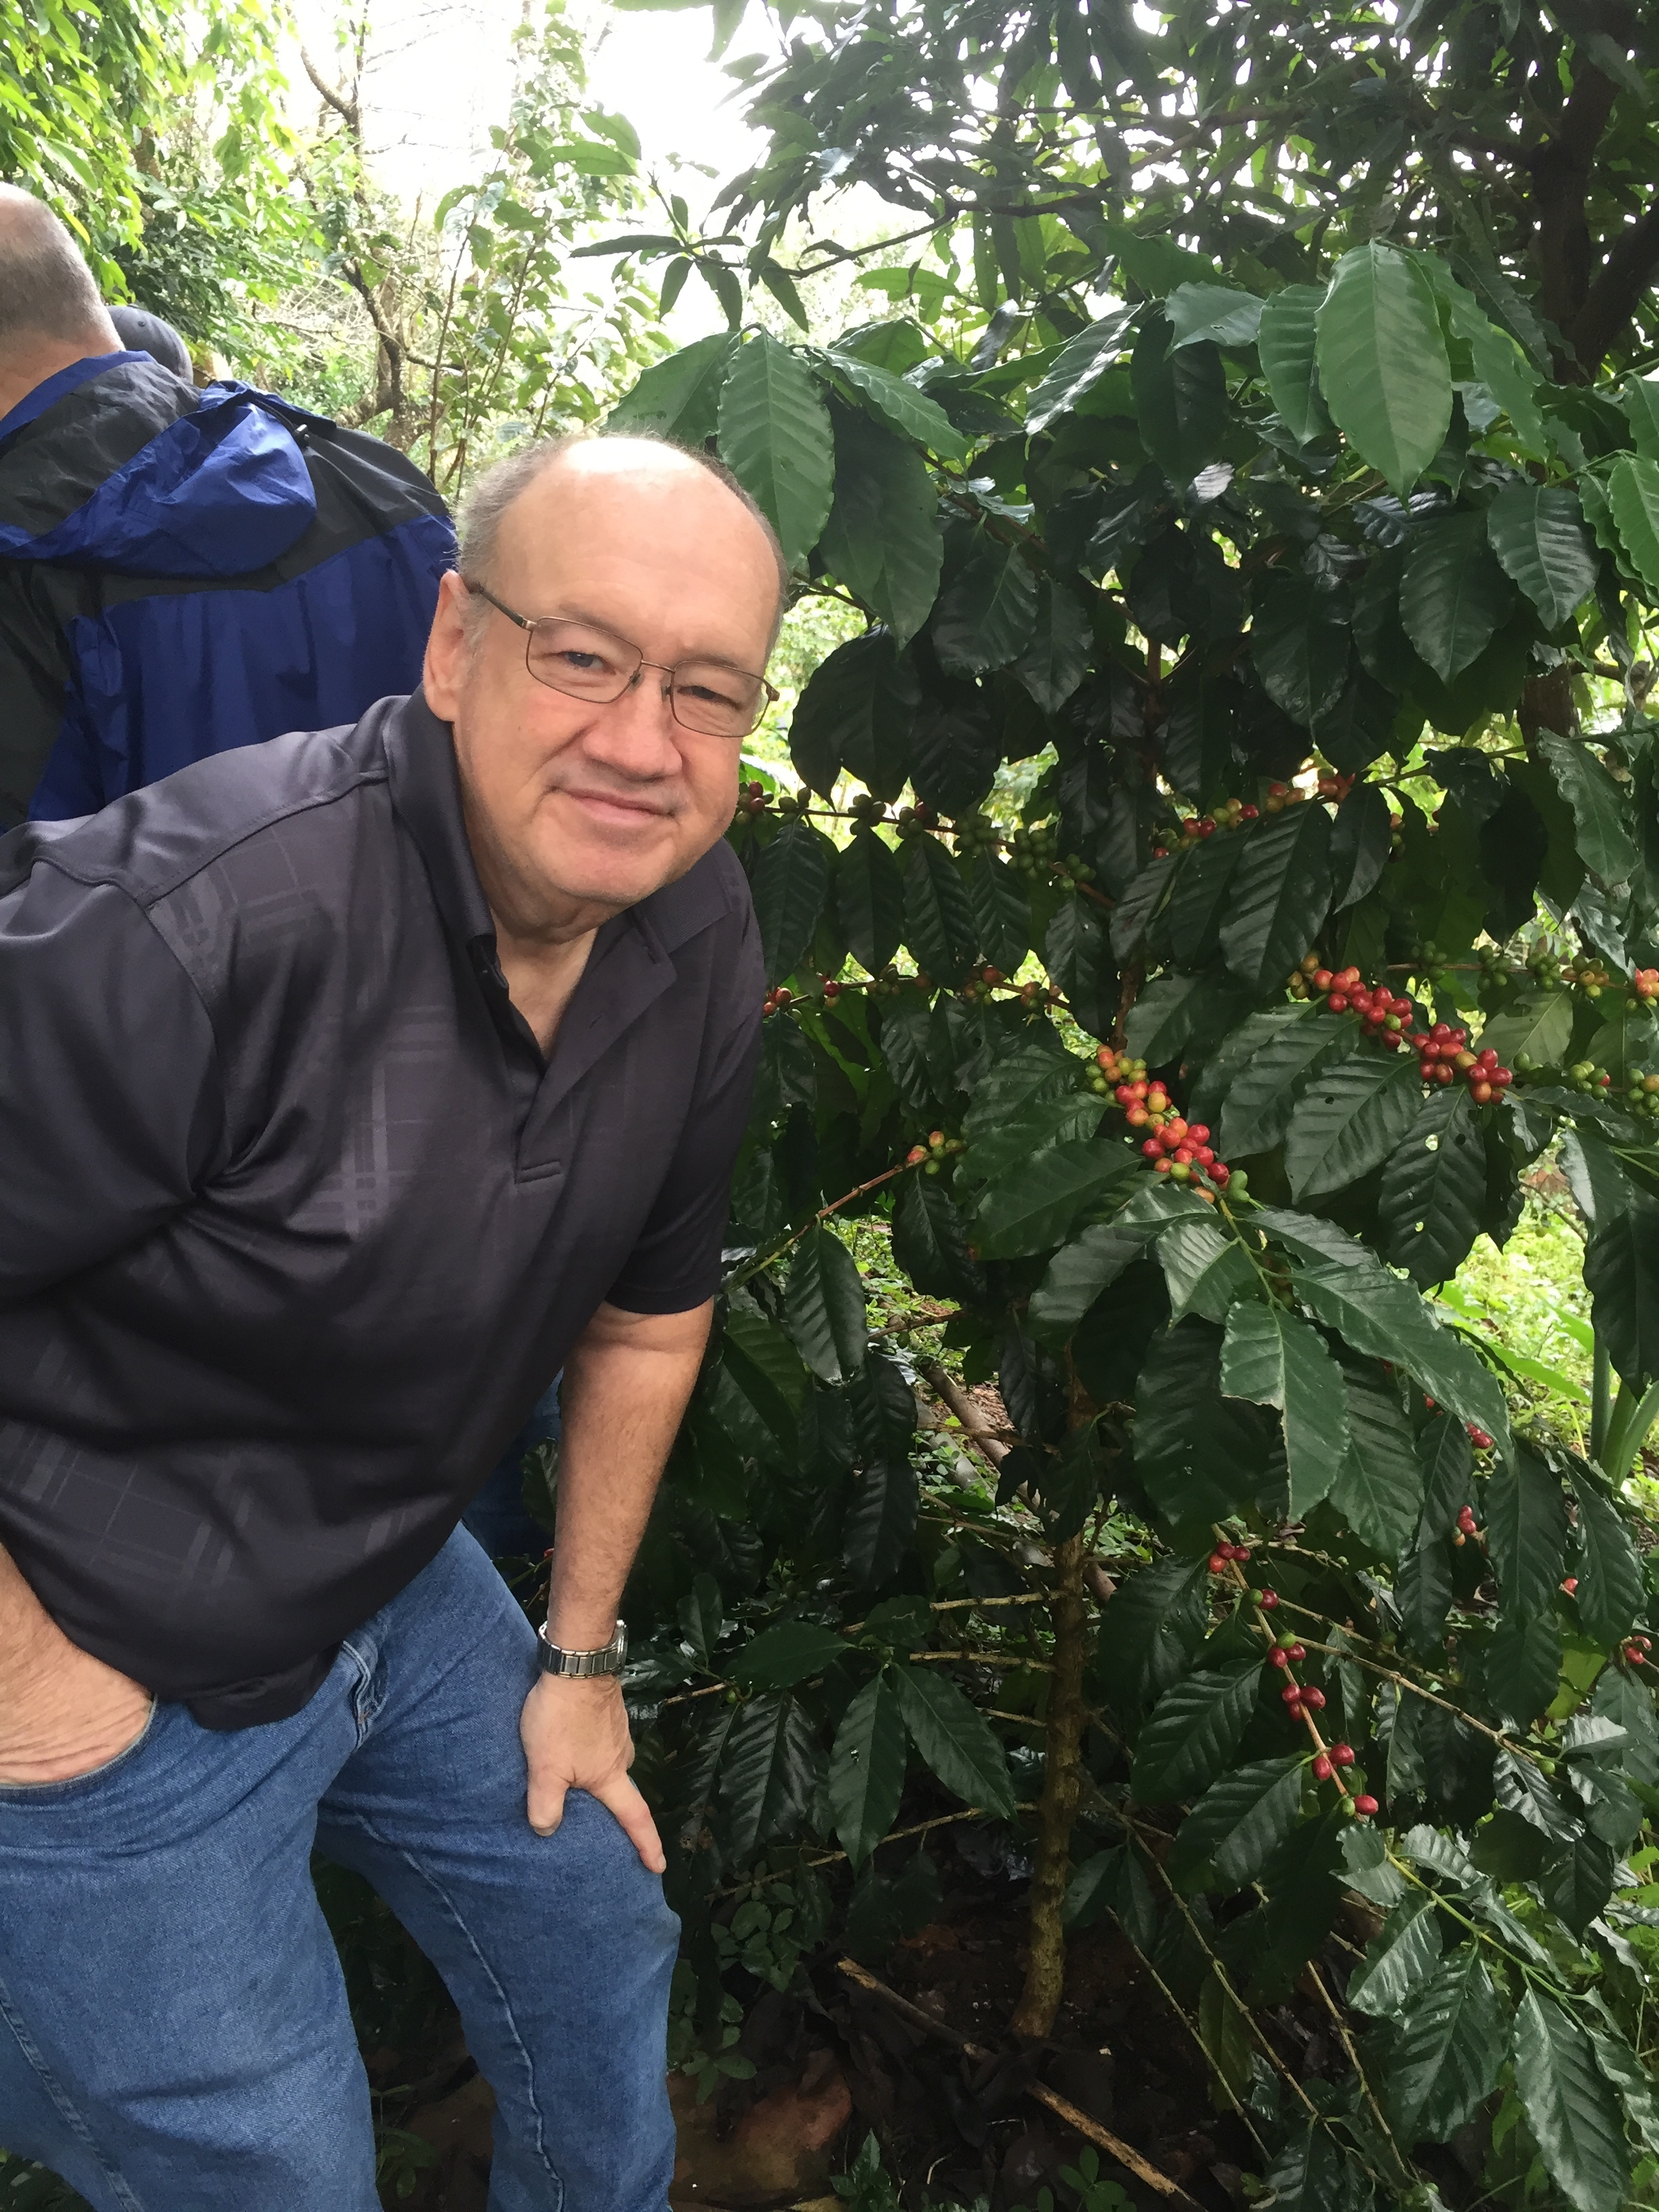 Donald in Guatemala for his roaster training courses.